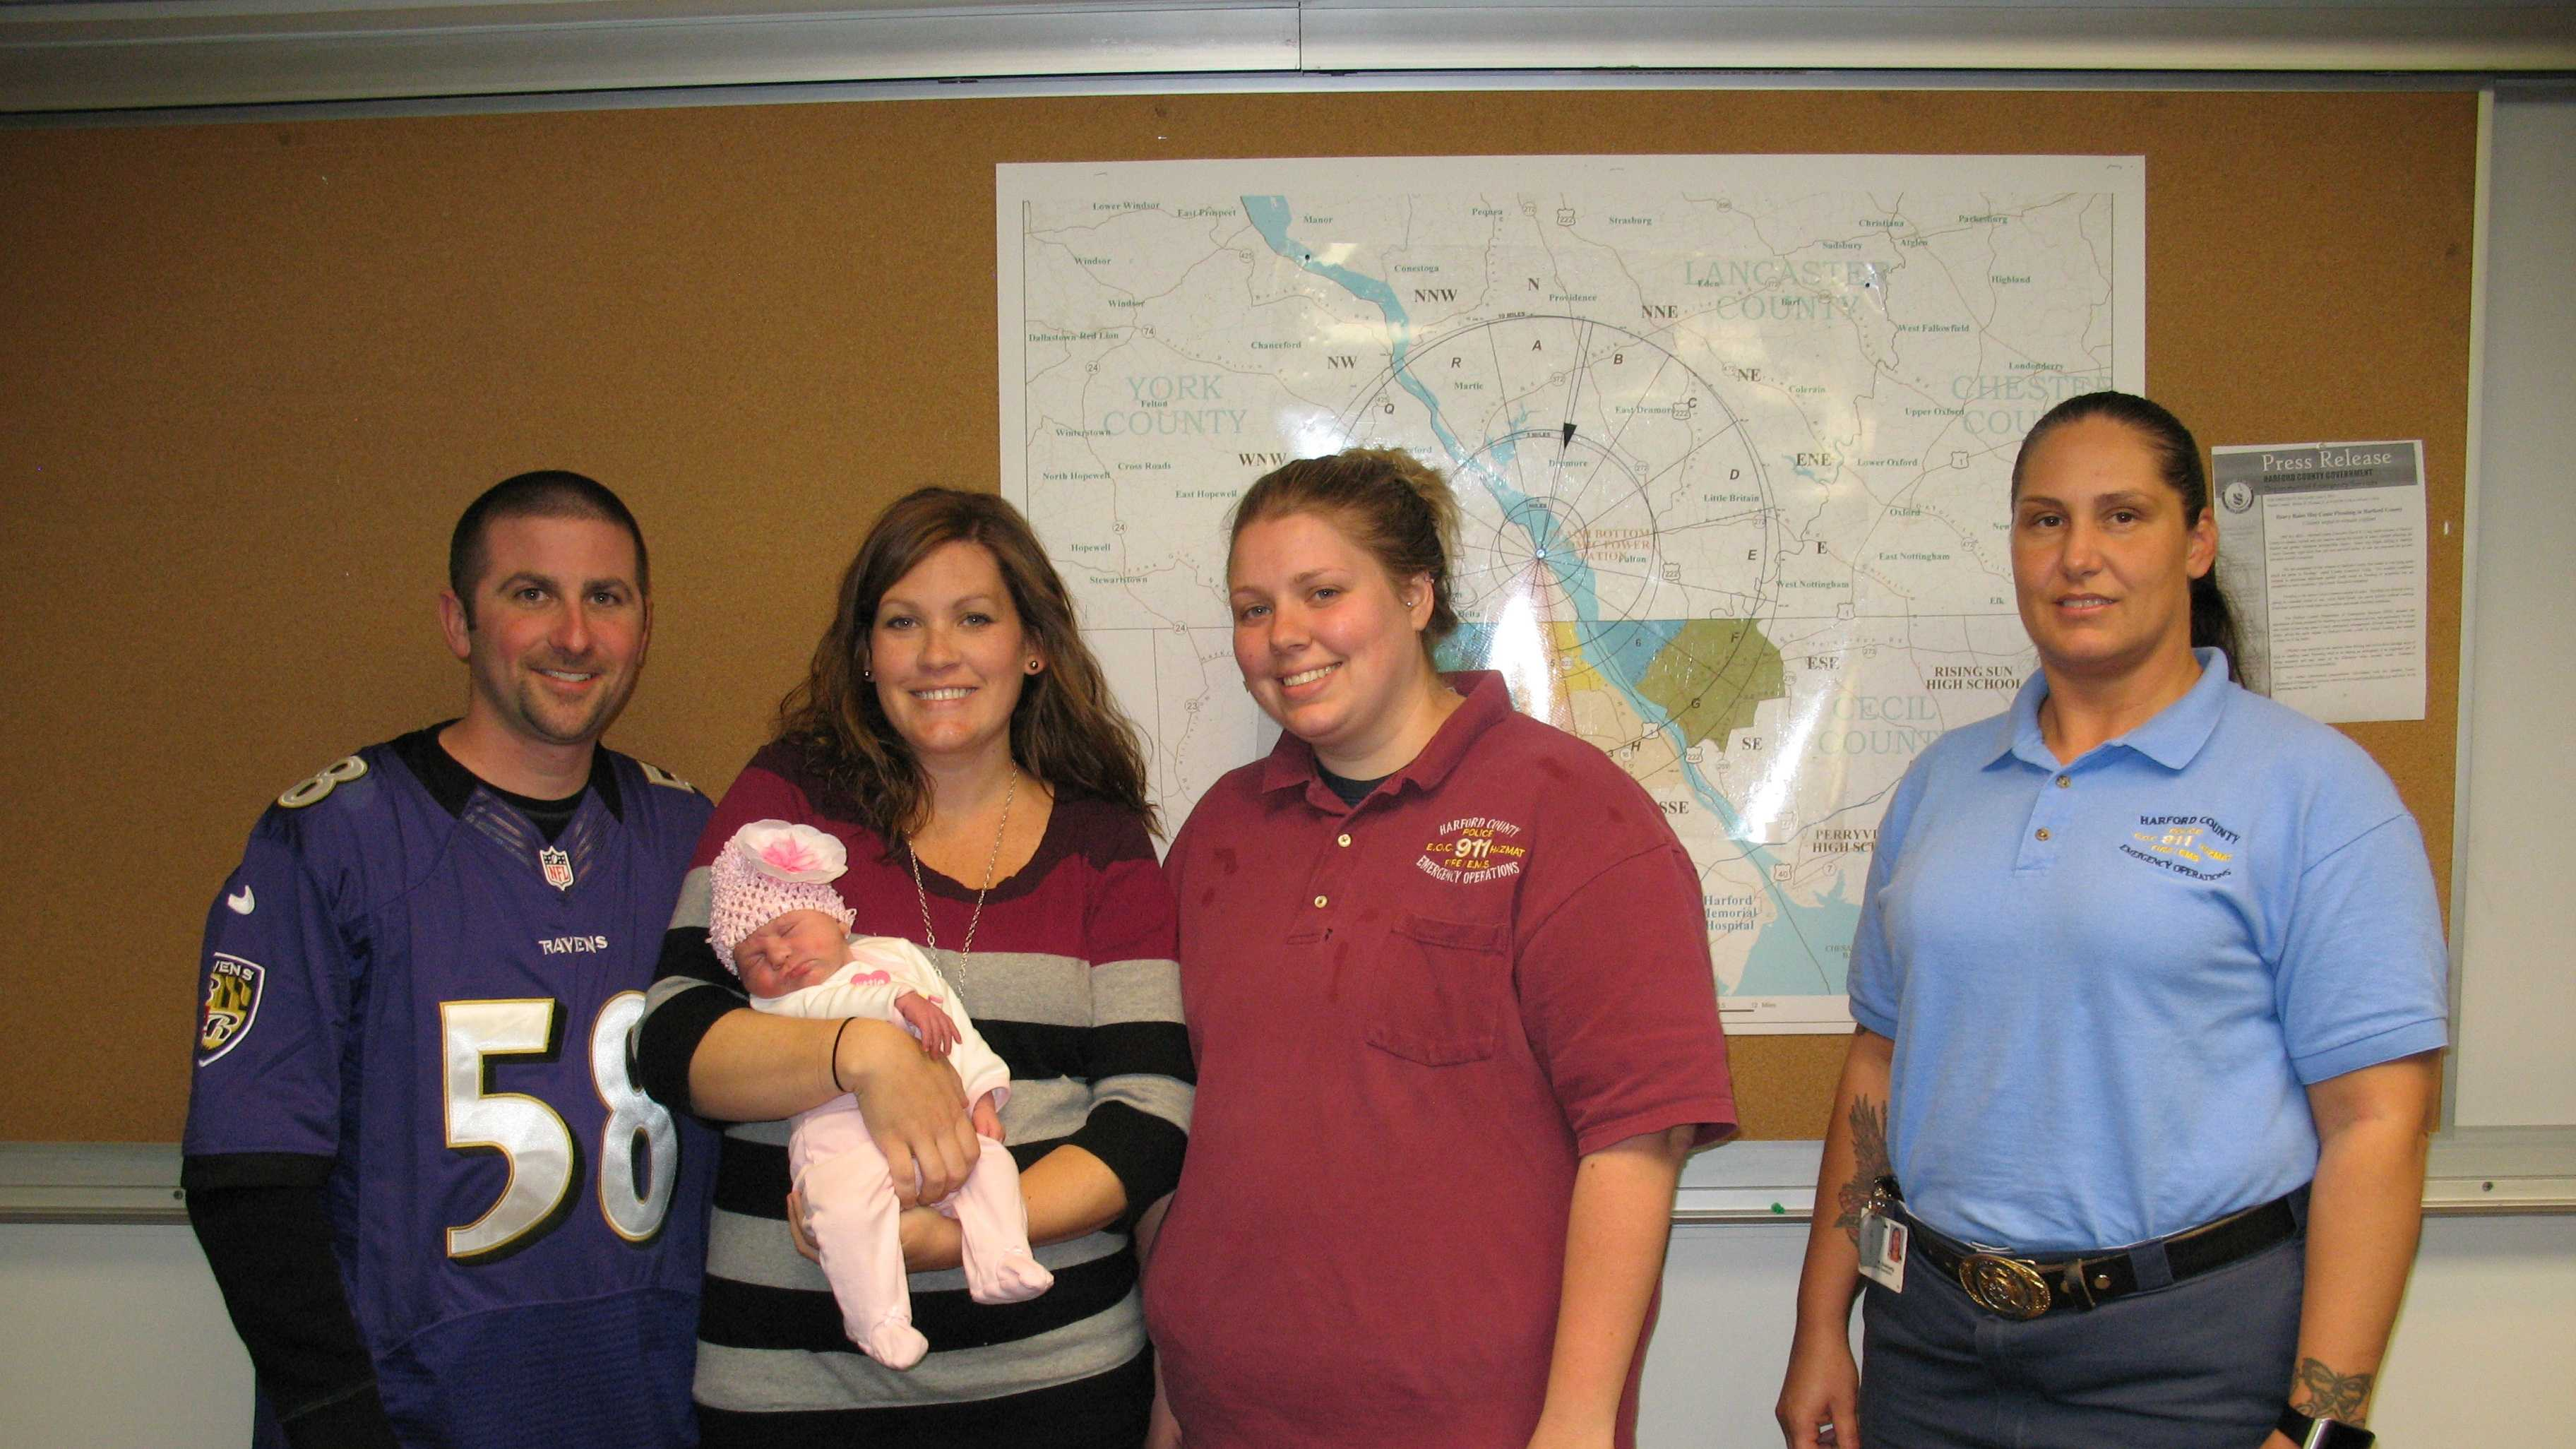 Matt and Emily Kulaga and their new daughter, Aubree Mae, meet Harford County public safety dispatchers Christina Abrams and Amanda Dolehanty.